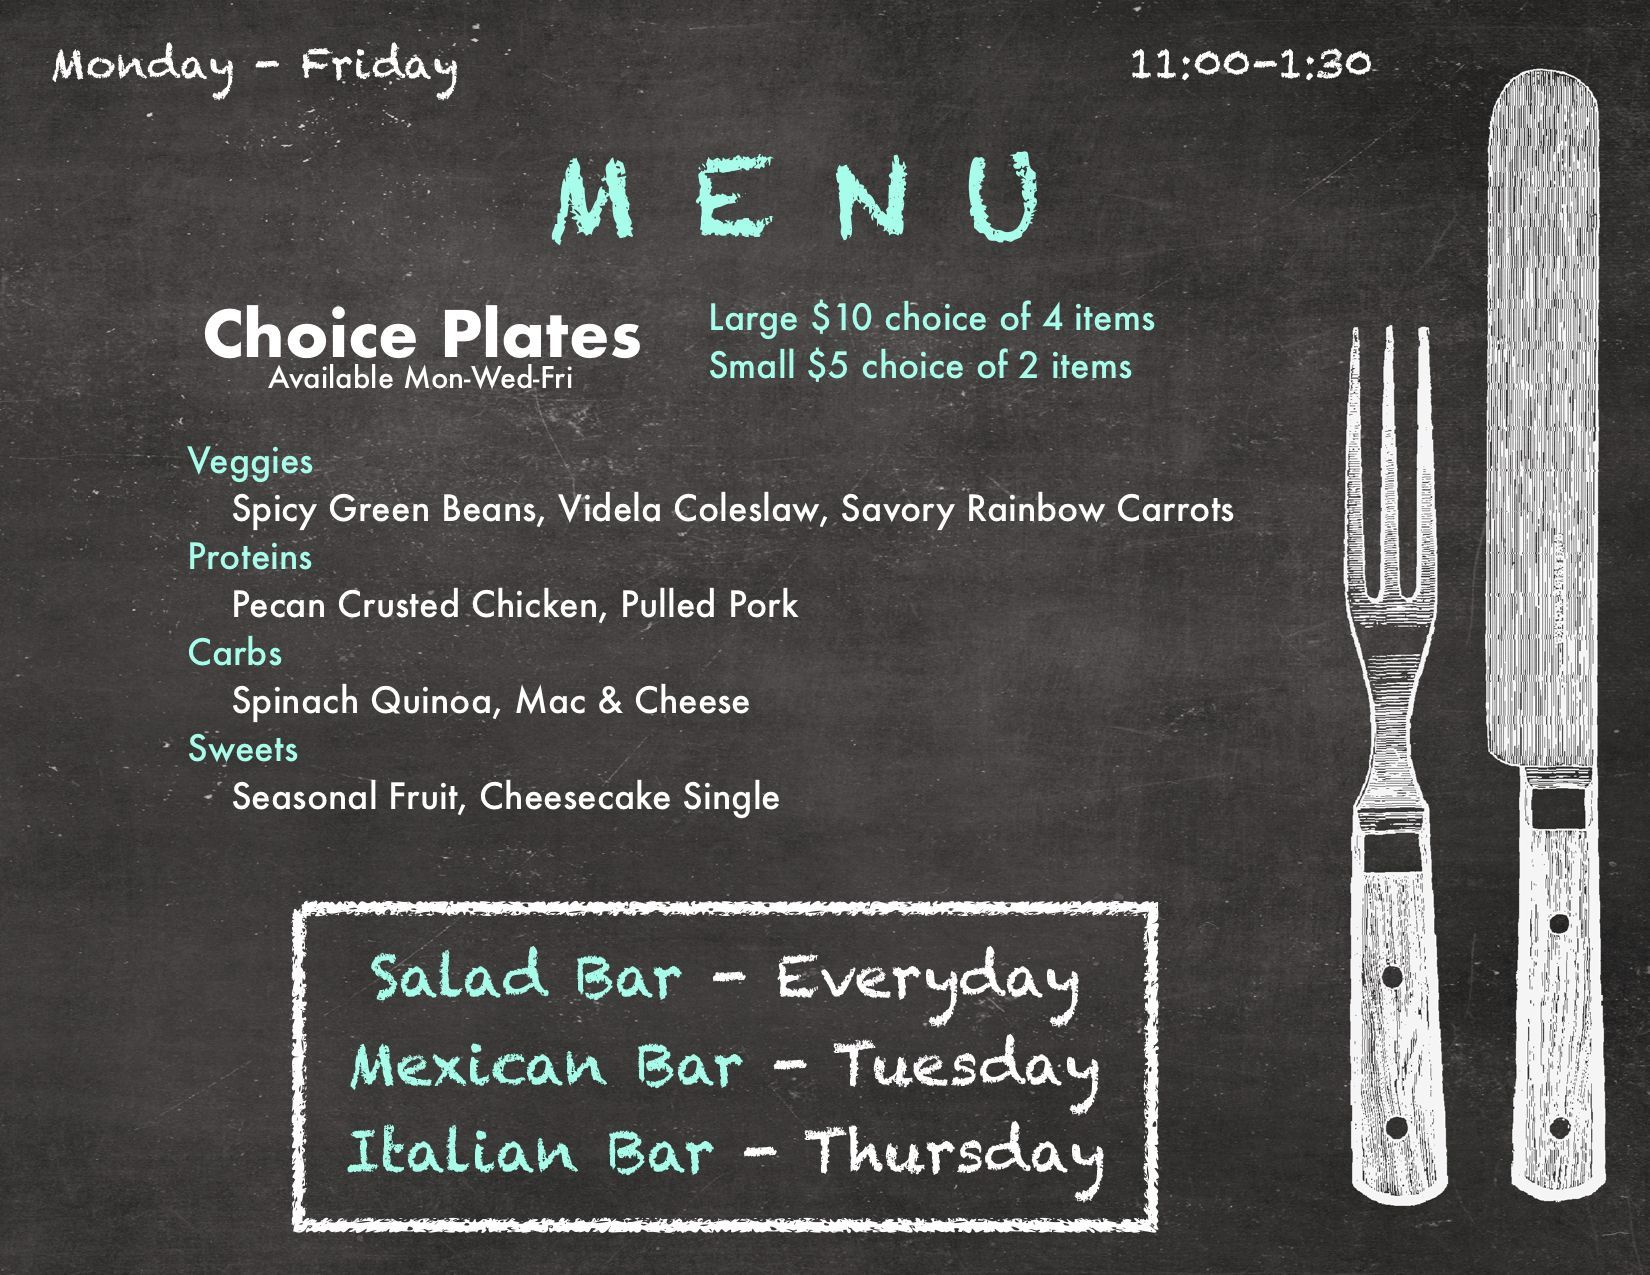 What S For Lunch Join Us This Week For Choice Plate Salad Bar Mexican Bar Italian Bar Homemade Soups An Salad Bar Pecan Crusted Chicken Fruit In Season